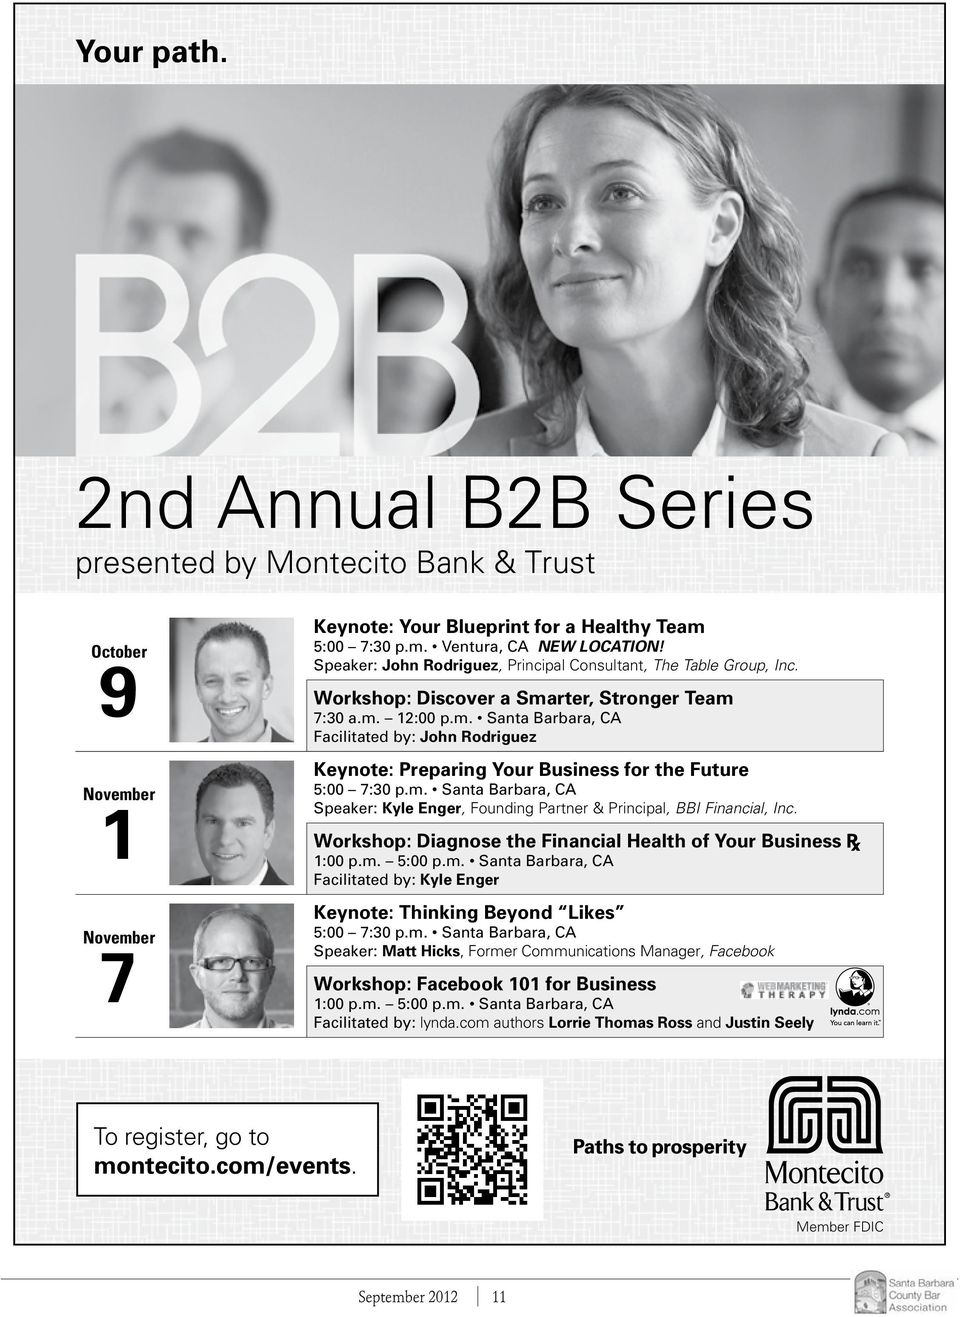 rter, Stronger Team 7:30 a.m. 12:00 p.m. Santa Barbara, CA Facilitated by: John Rodriguez Keynote: Preparing Your Business for the Future 5:00 7:30 p.m. Santa Barbara, CA Speaker: Kyle Enger, Founding Partner & Principal, BBI Financial, Inc.